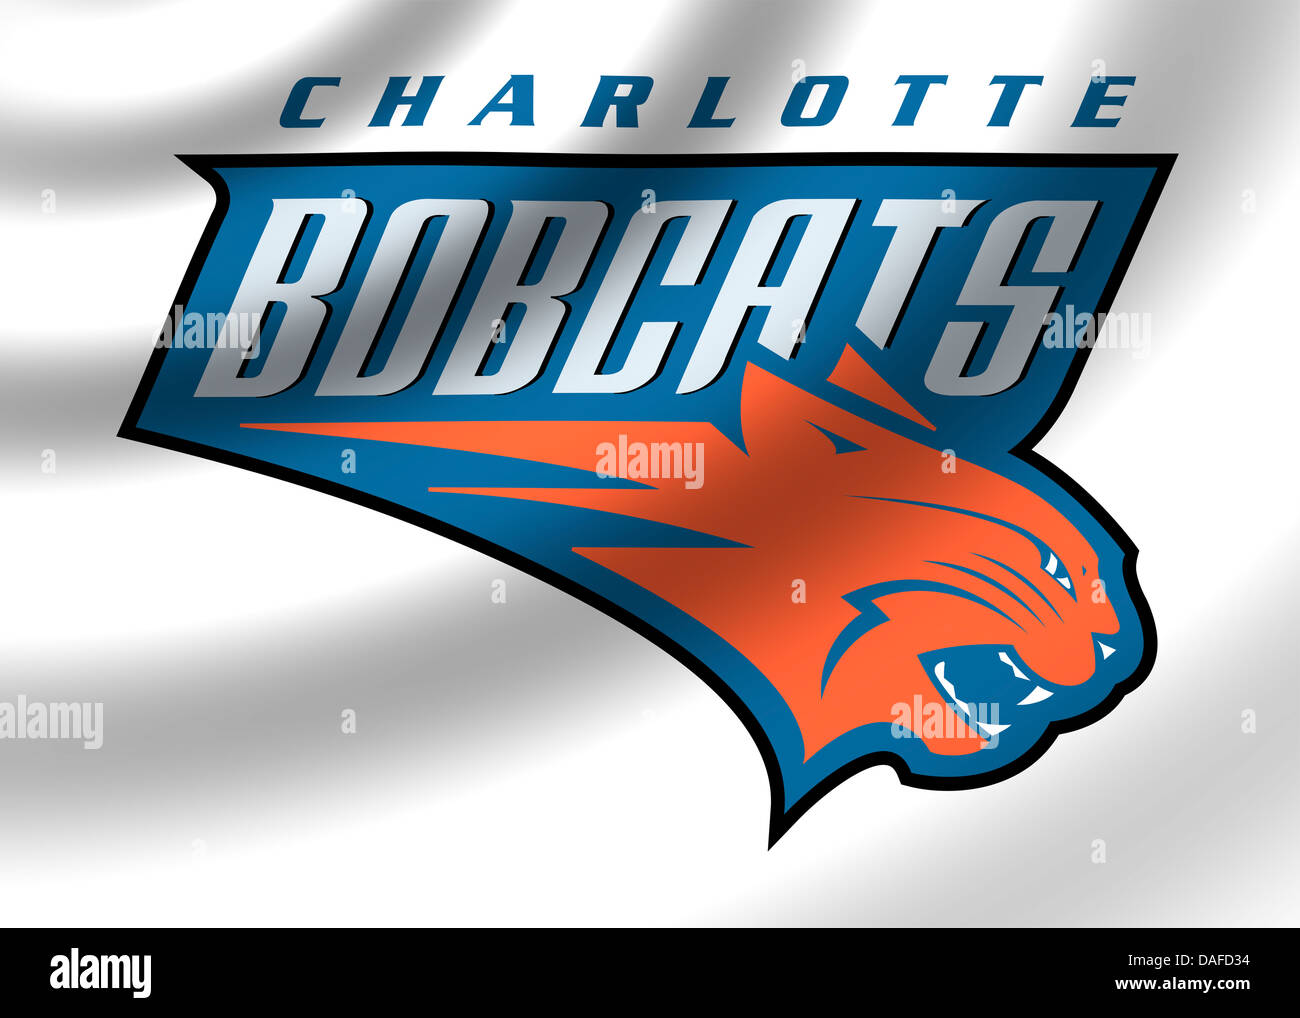 Charlotte Bobcats Logo Symbol Icon Flag Emblem Stock Photo 58117224